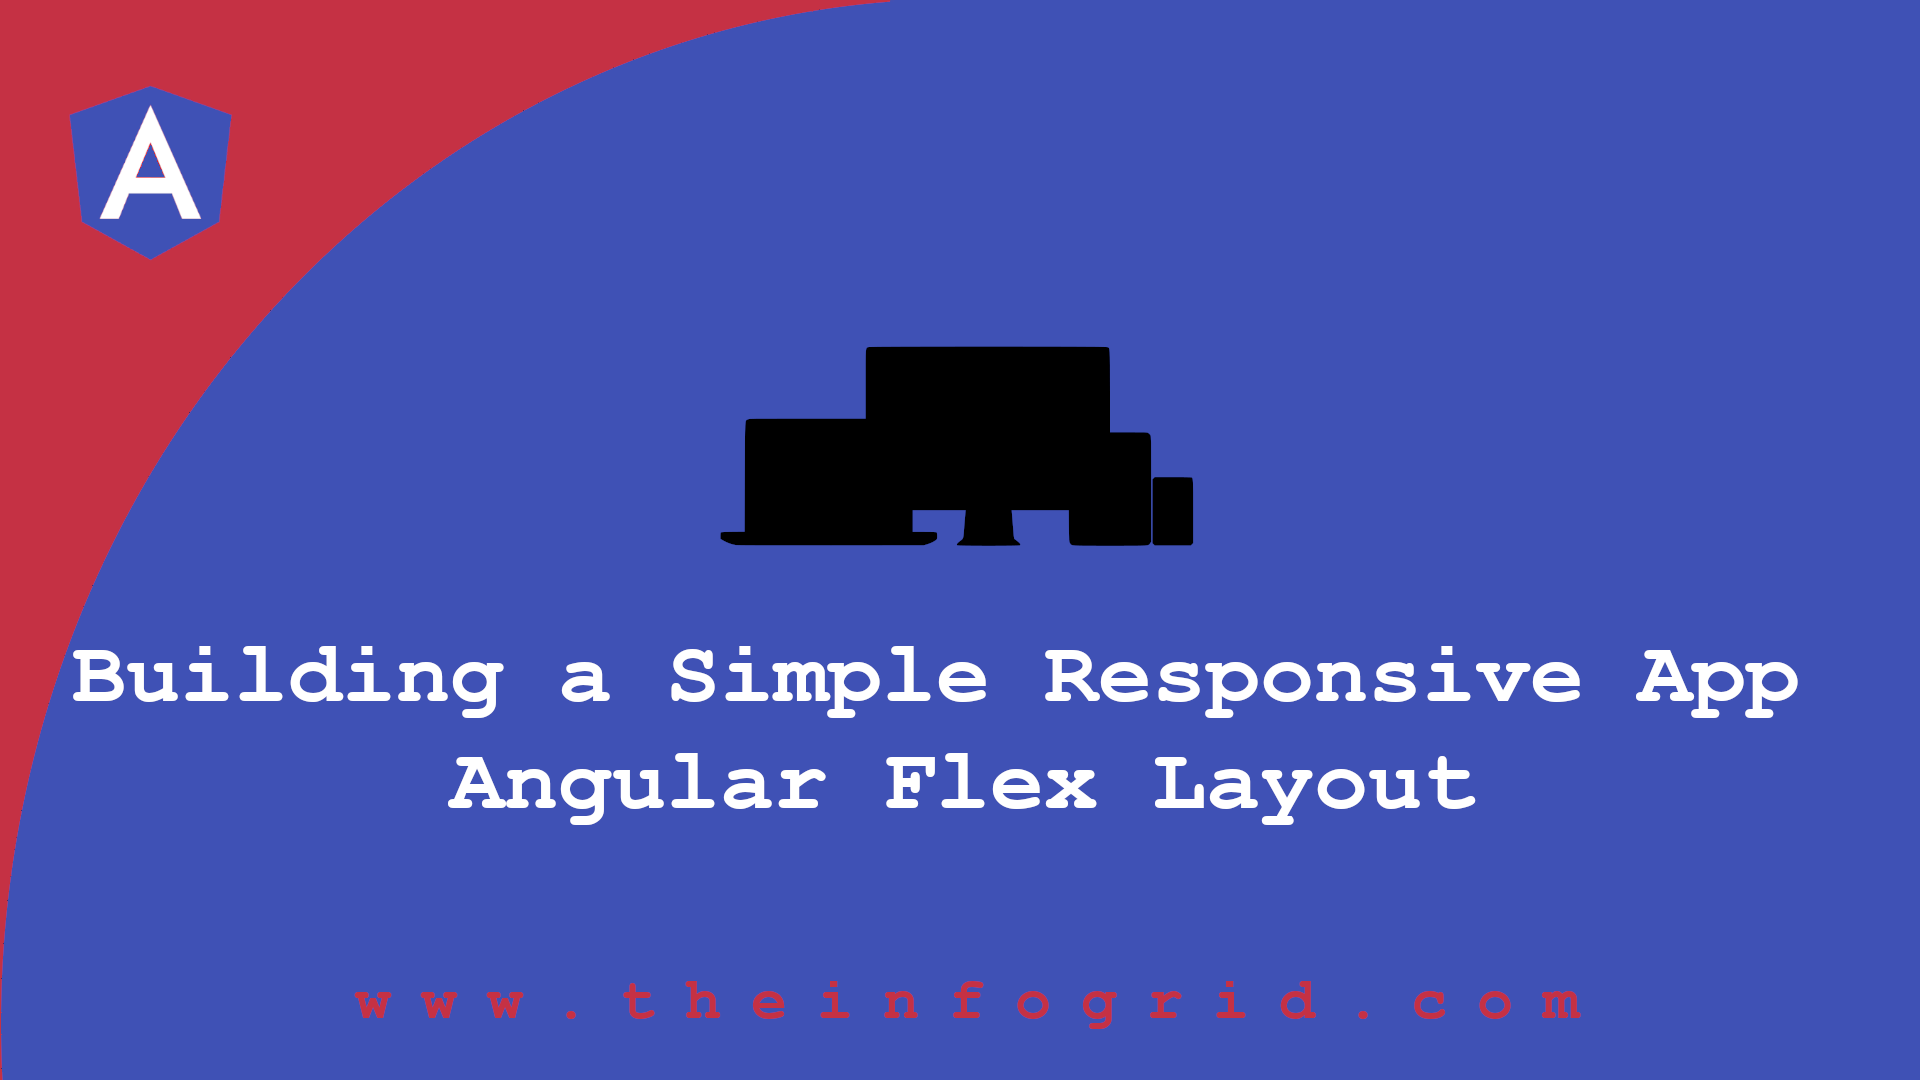 Building a Simple Responsive App with Angular Flex Layout